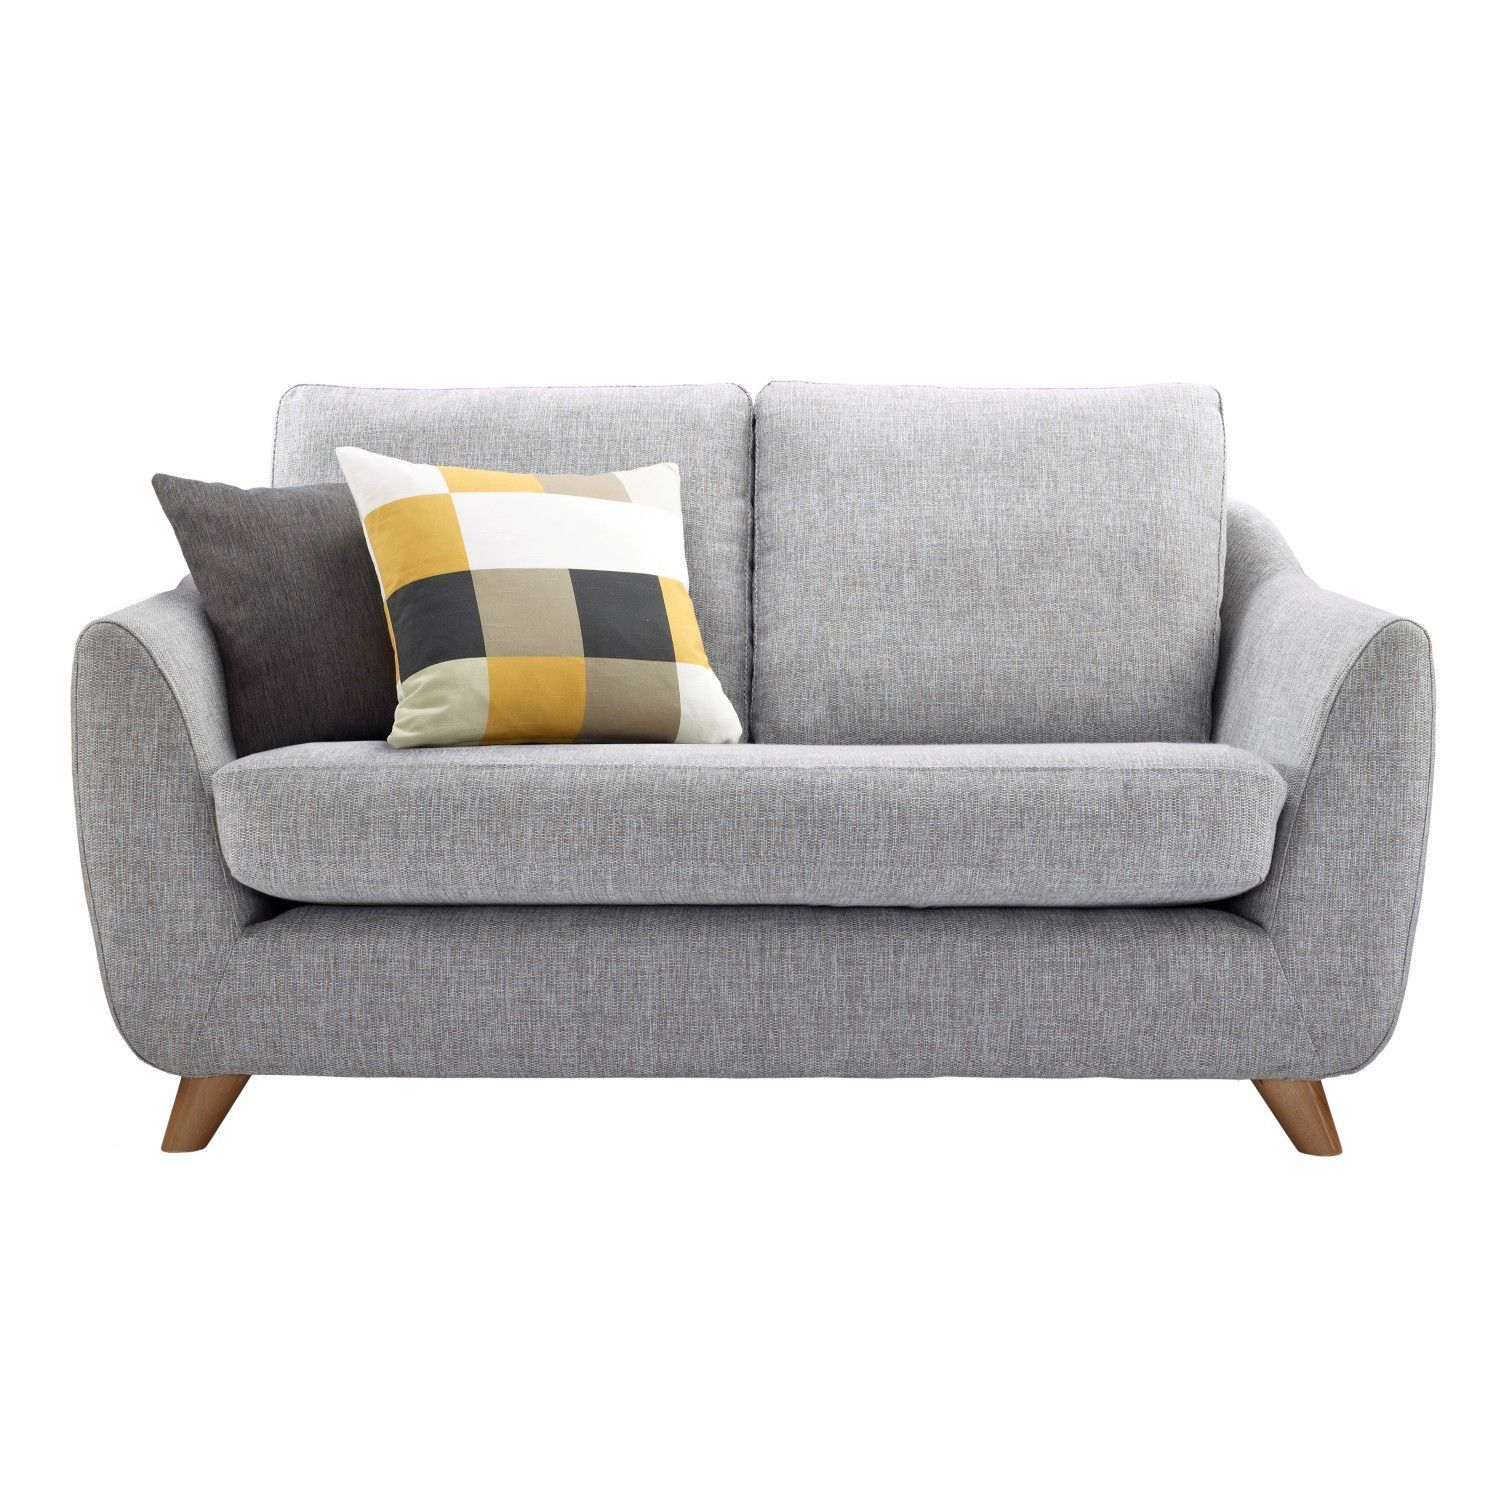 Small Loveseat Sofa Sofas Sofa Bed For Small Spaces Small Sofa Loveseat Sofa Bed